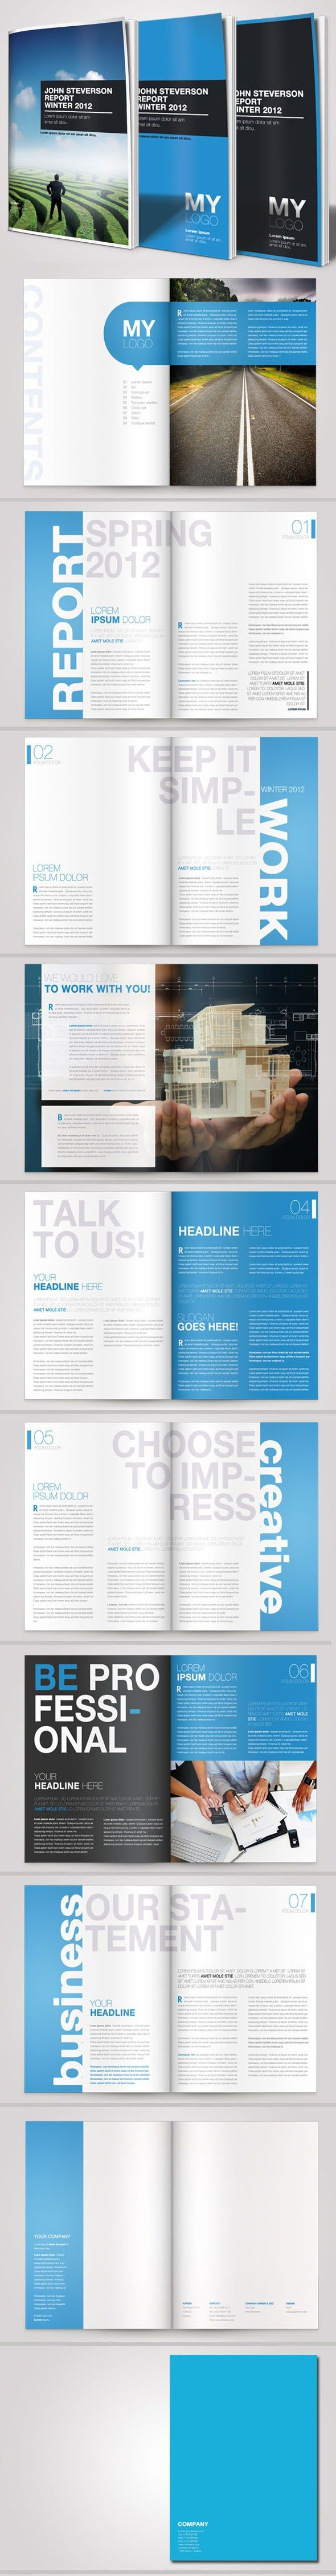 Brochure Design – A4 Business Brochure Vol. 03